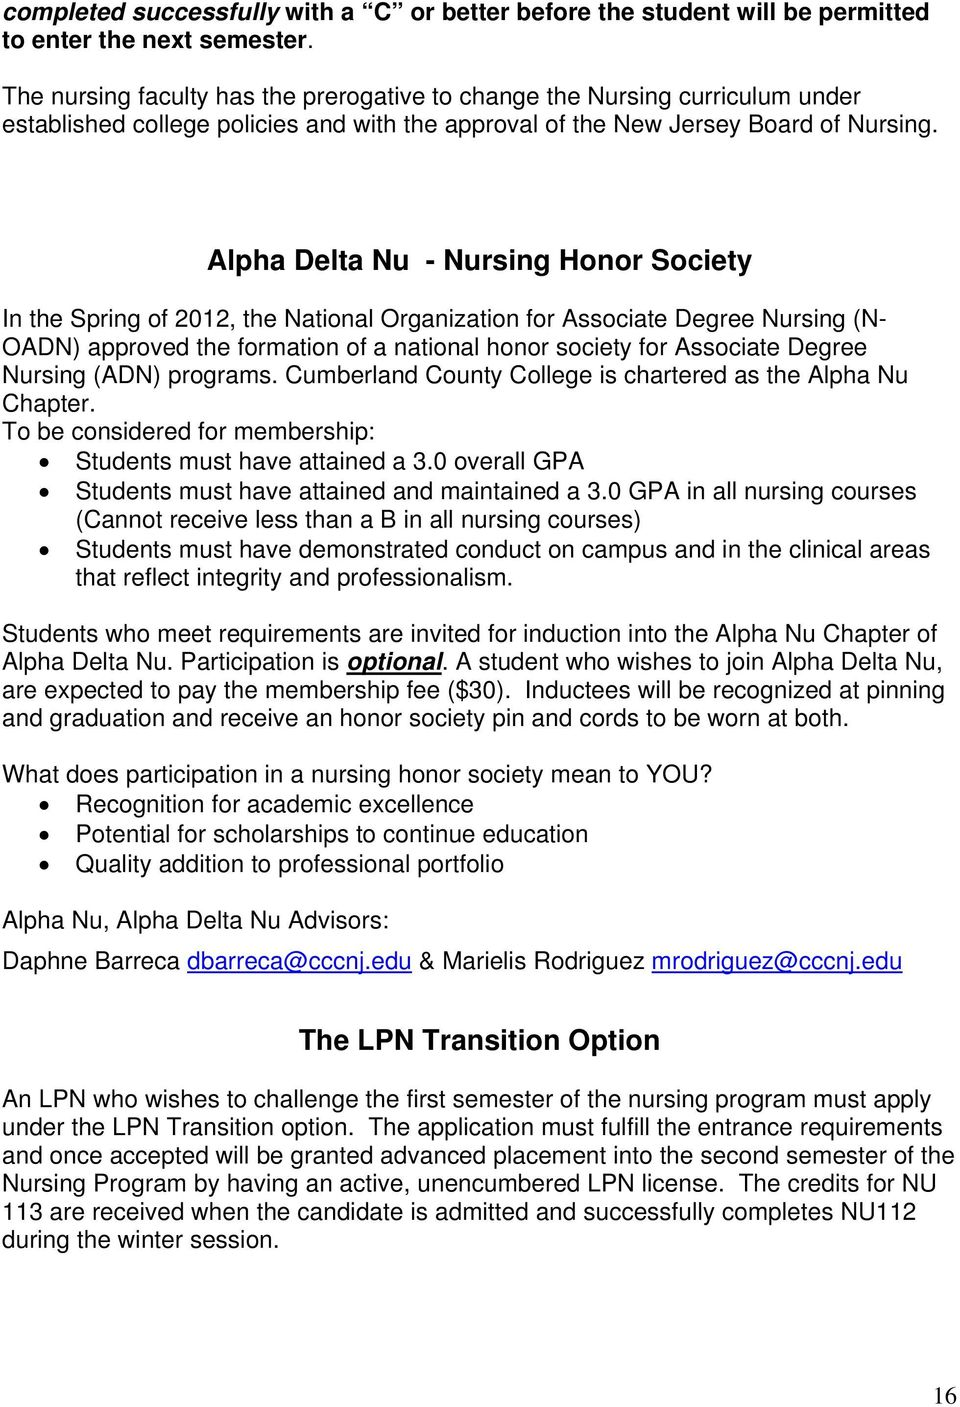 Alpha Delta Nu - Nursing Honor Society In the Spring of 2012, the National Organization for Associate Degree Nursing (N- OADN) approved the formation of a national honor society for Associate Degree